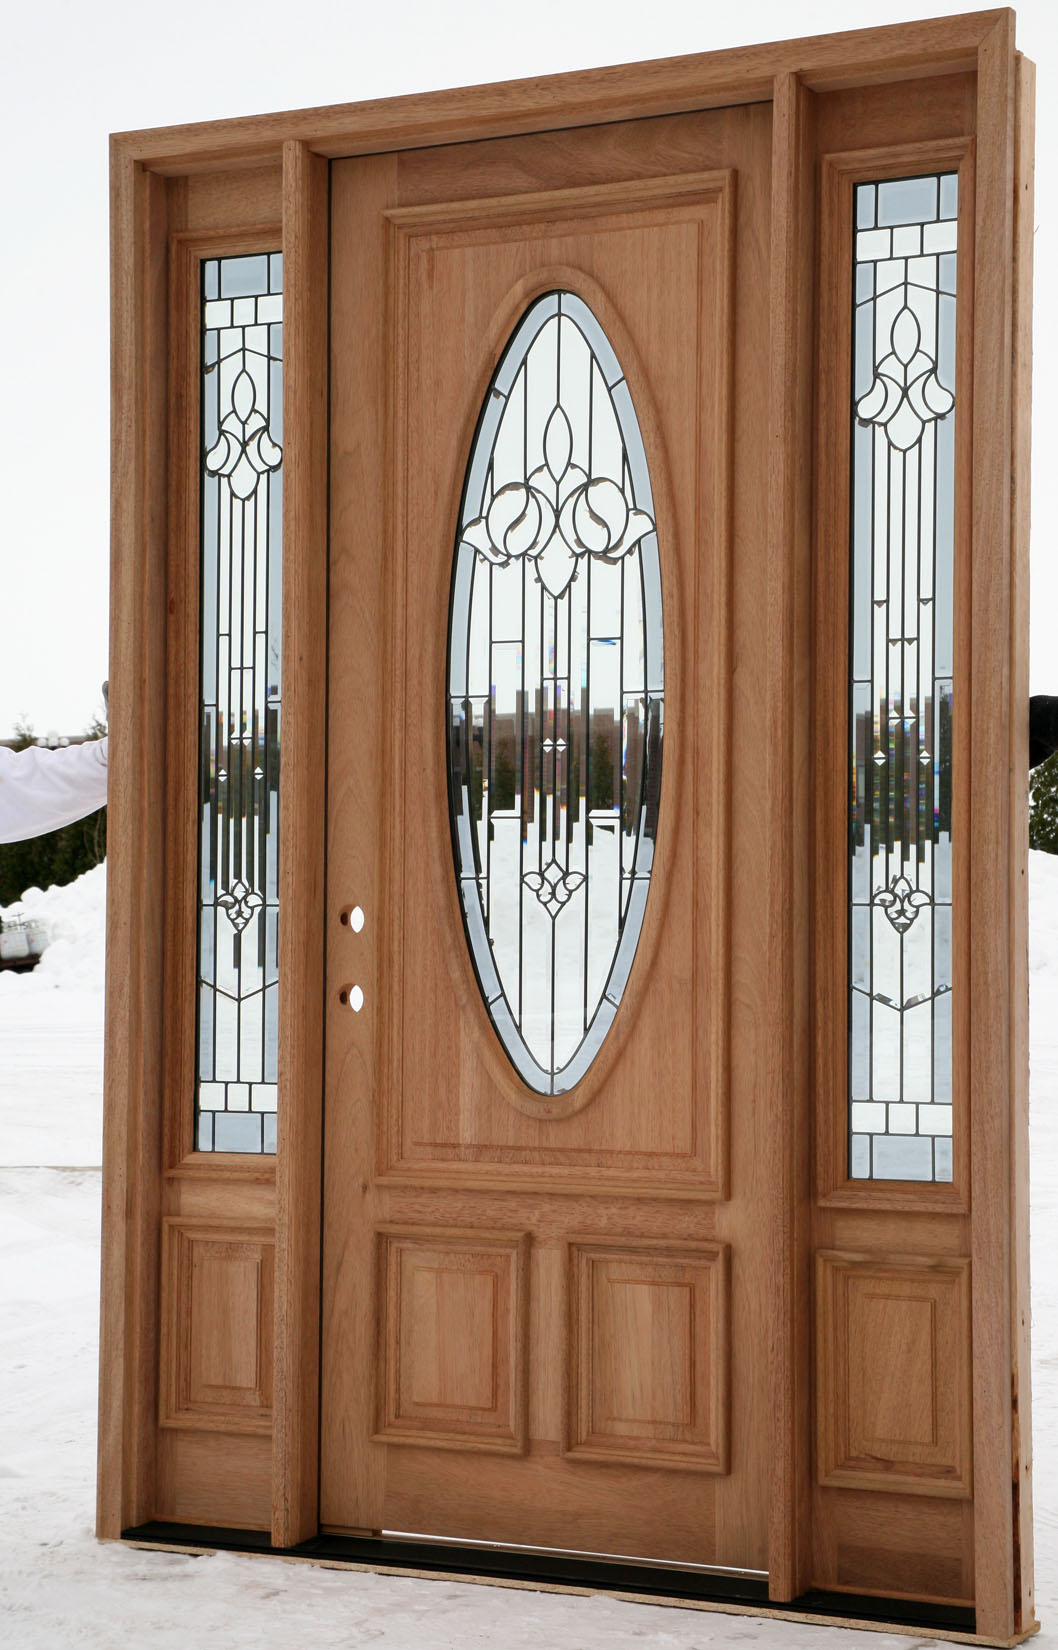 1650 #73472A Exterior Entry Doors With Sidelights picture/photo Entry Doors With Sidelights 41991058